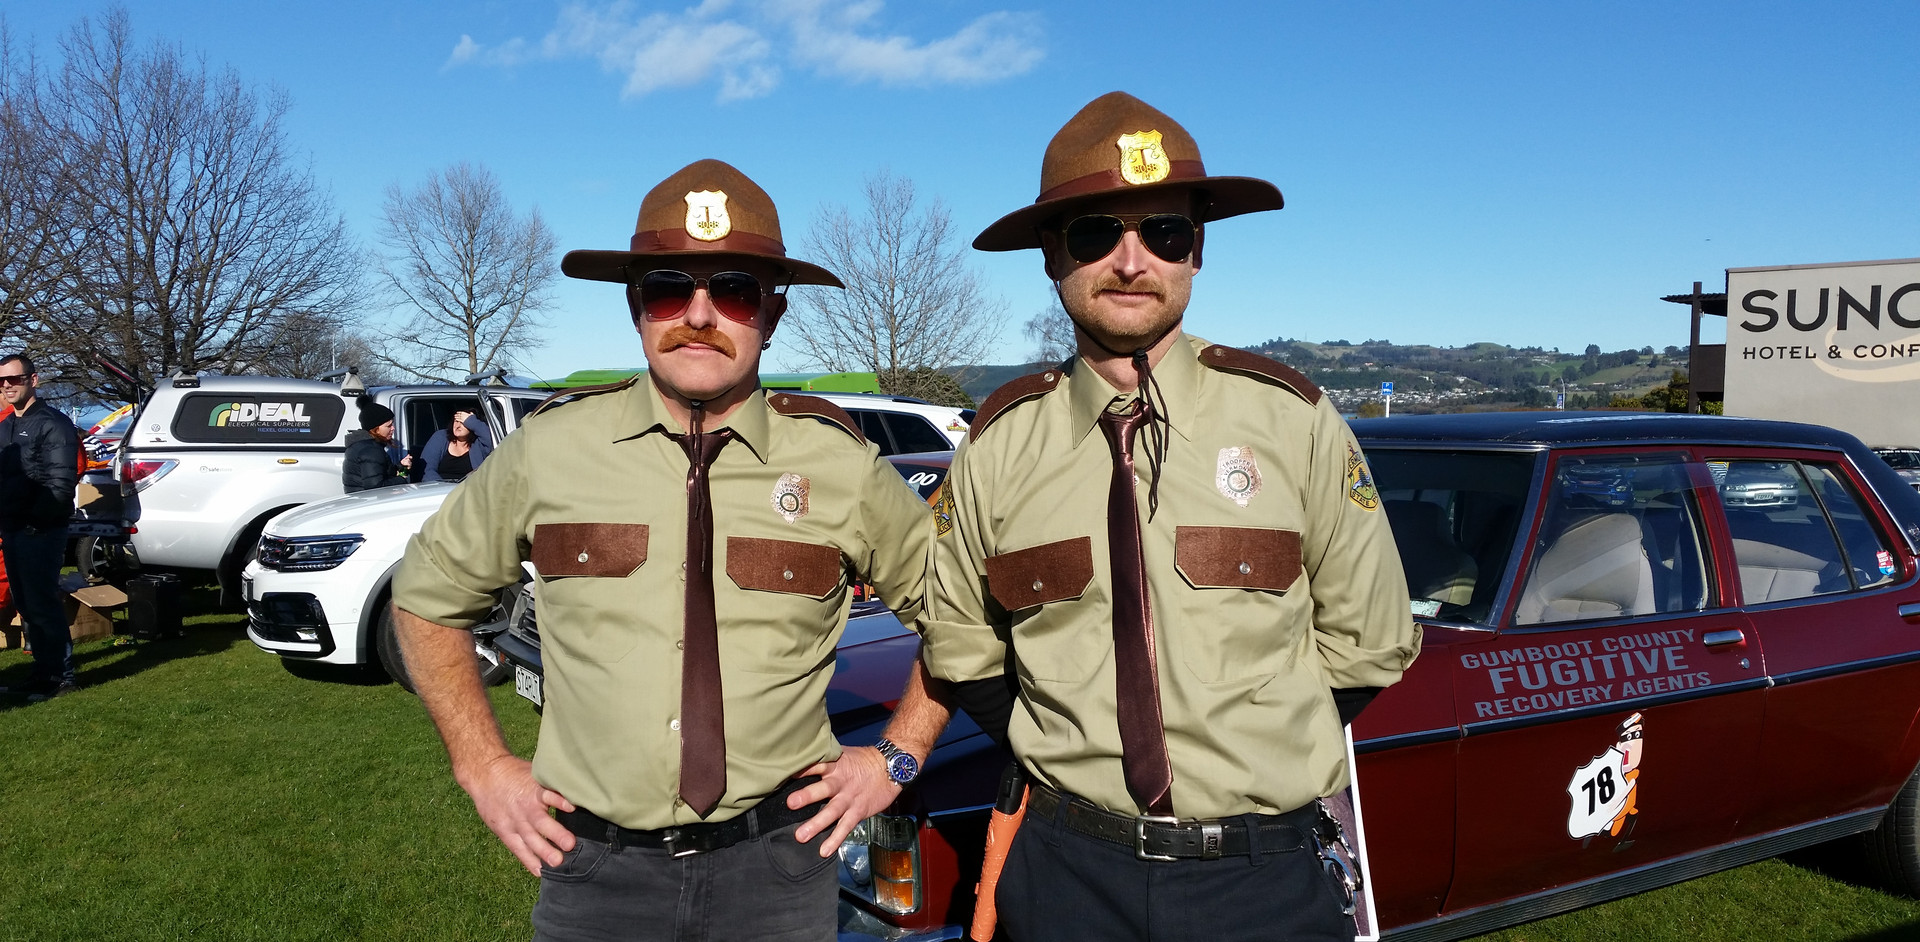 Super Troopers in action